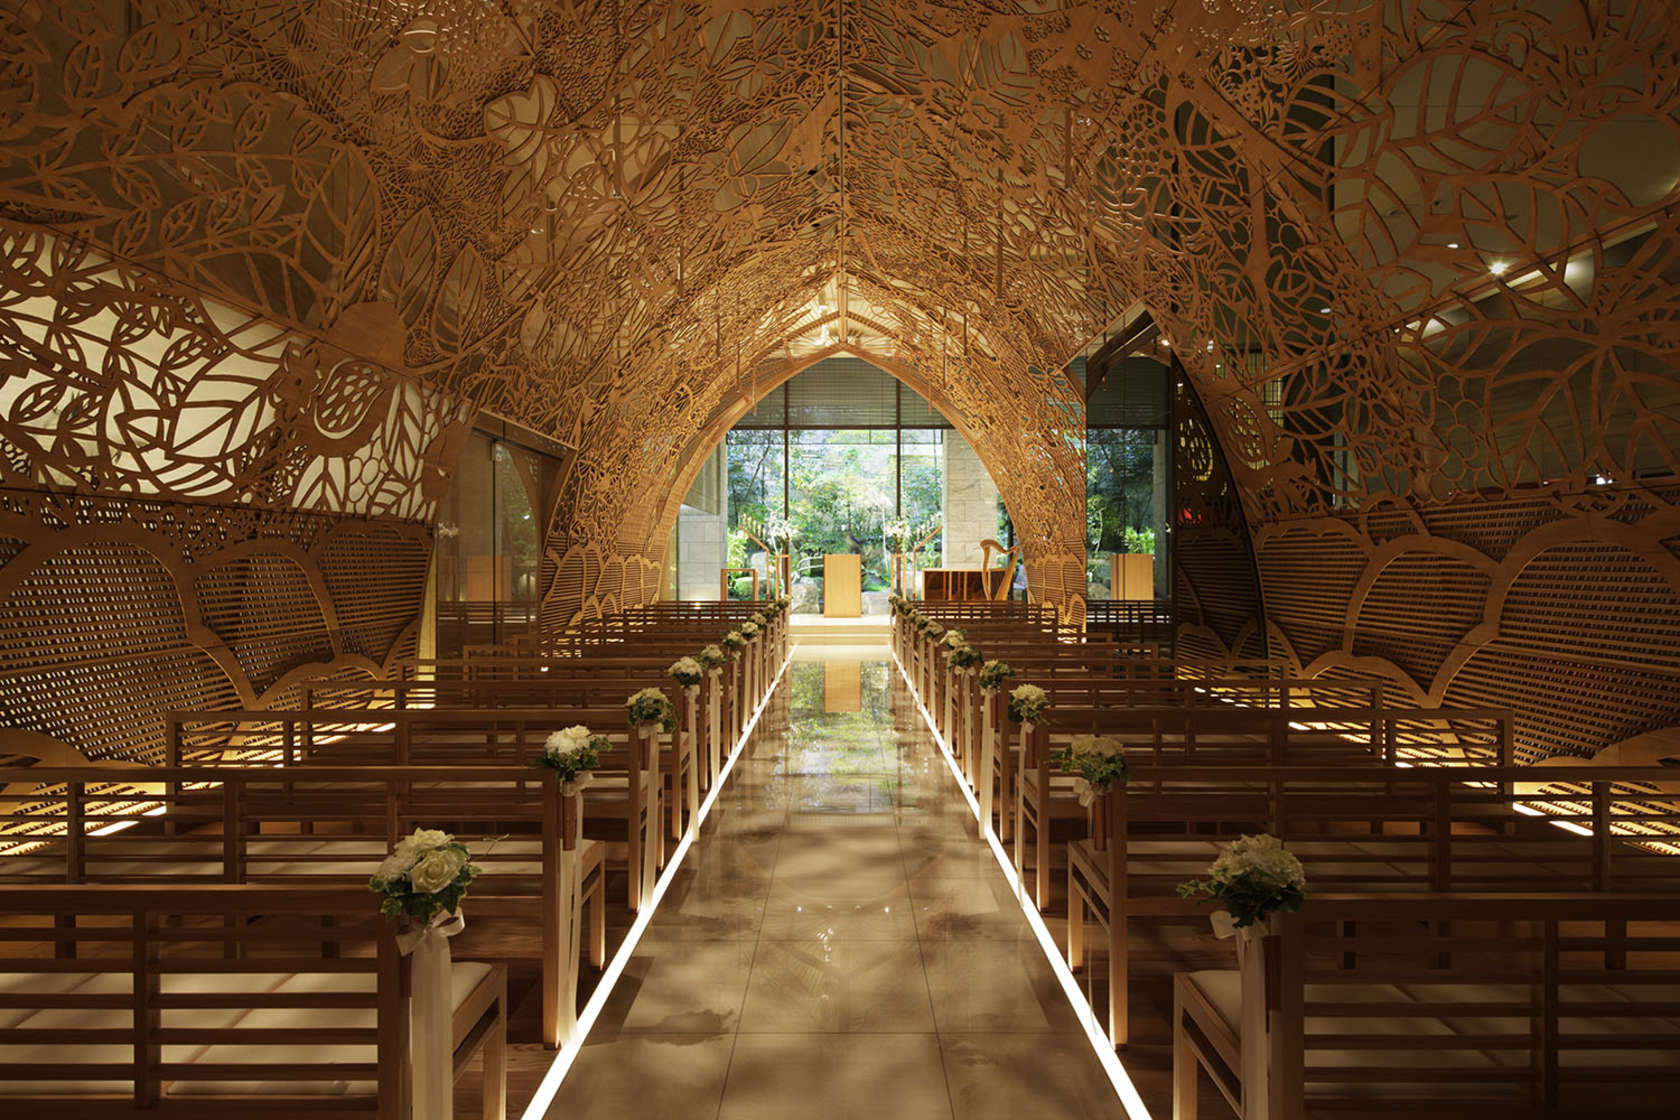 The Ana Crowne Plaza Hotel Chapel in Hiroshima. The dome's wooden cutwork casts shadows like sunlight through the trees, creating an illusion of a sun-dappled forest.